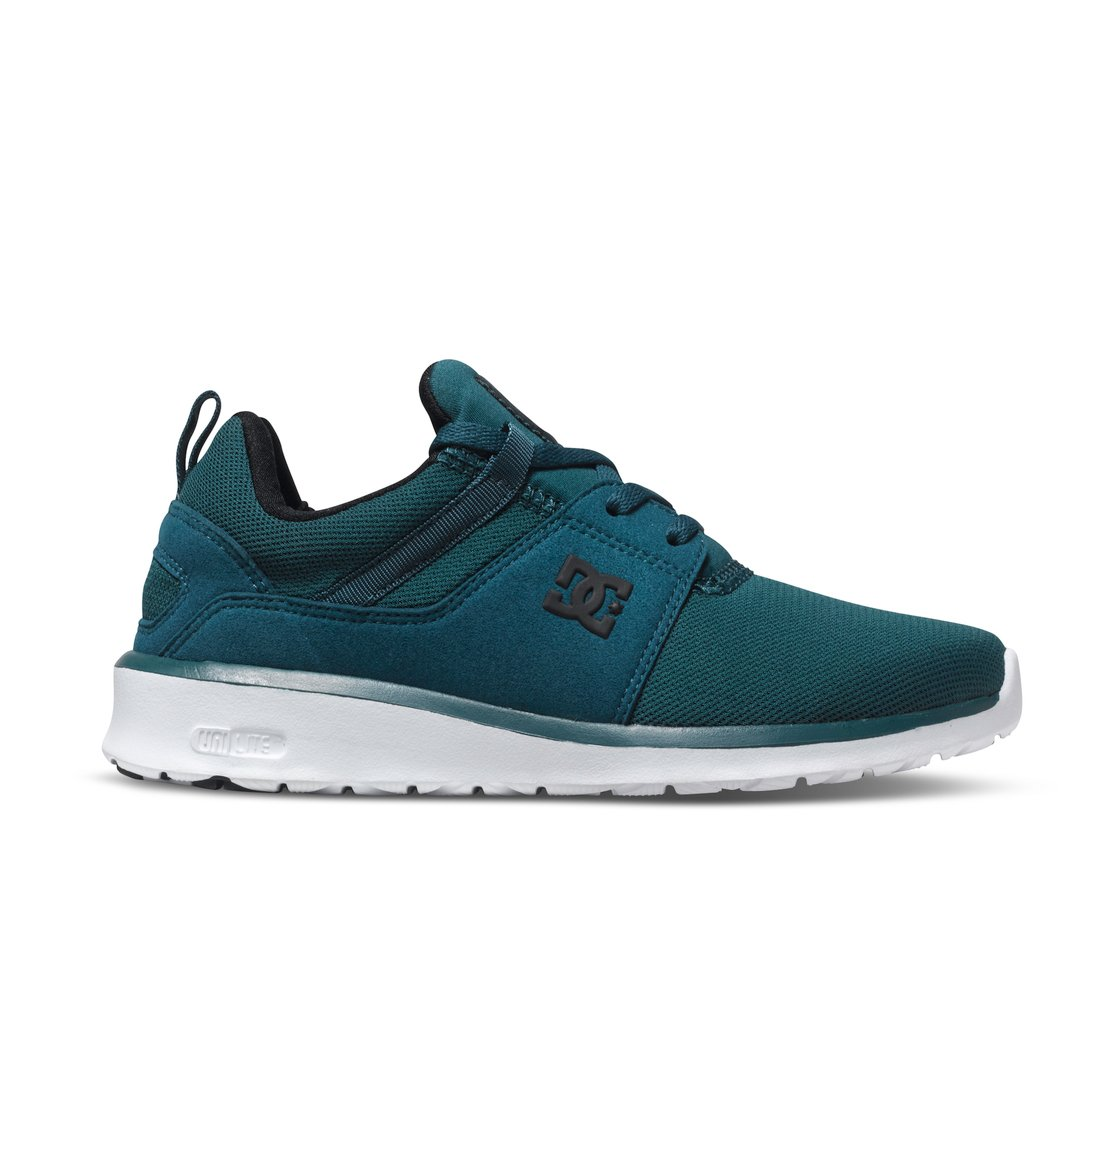 dc shoes heathrow low top shoes for adjs700021 ebay